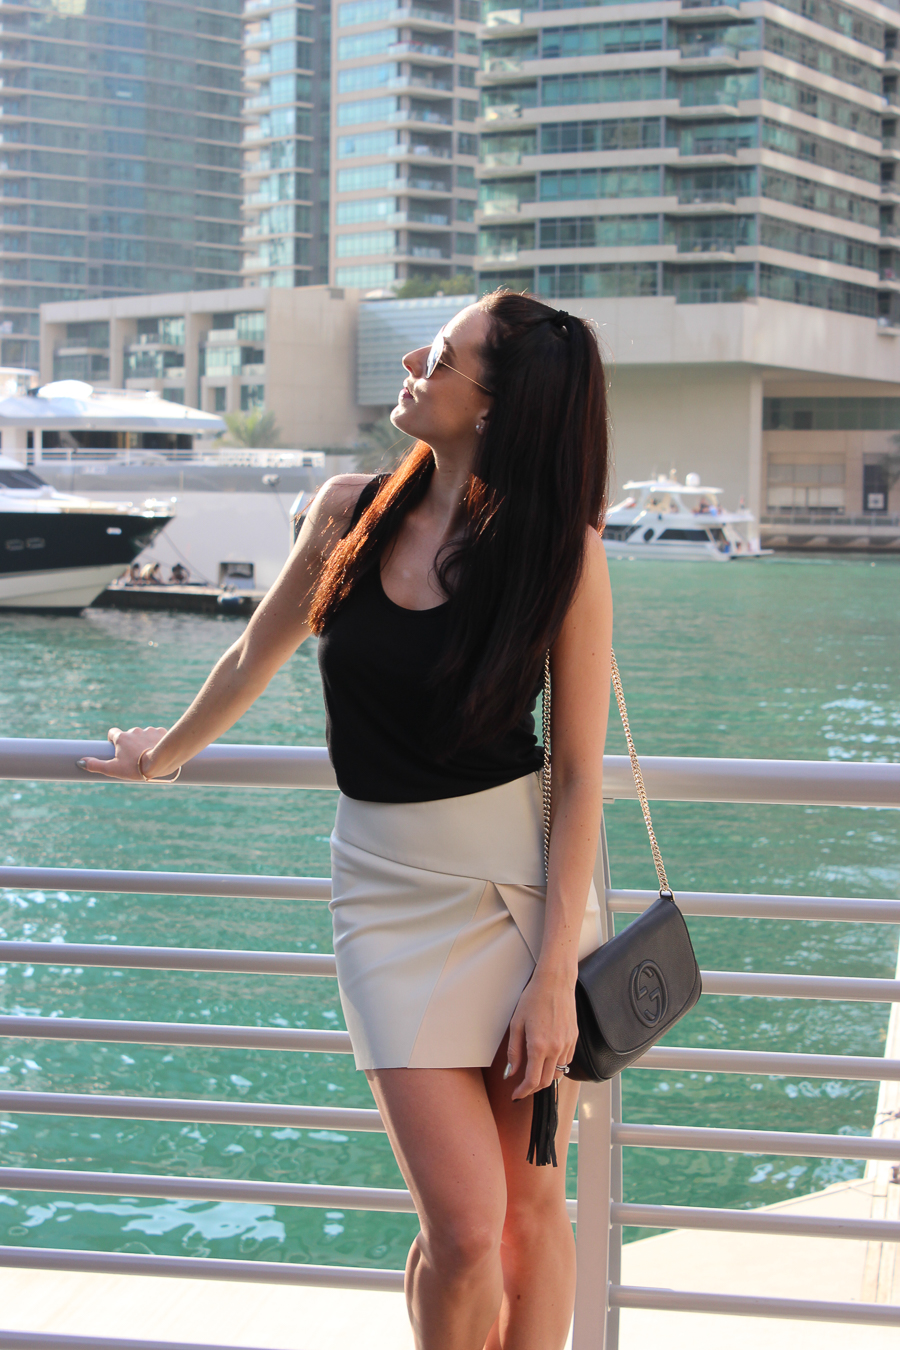 clutch and carry on - uk travel blogger - dubai travel blog - sabrina chakici -_-110